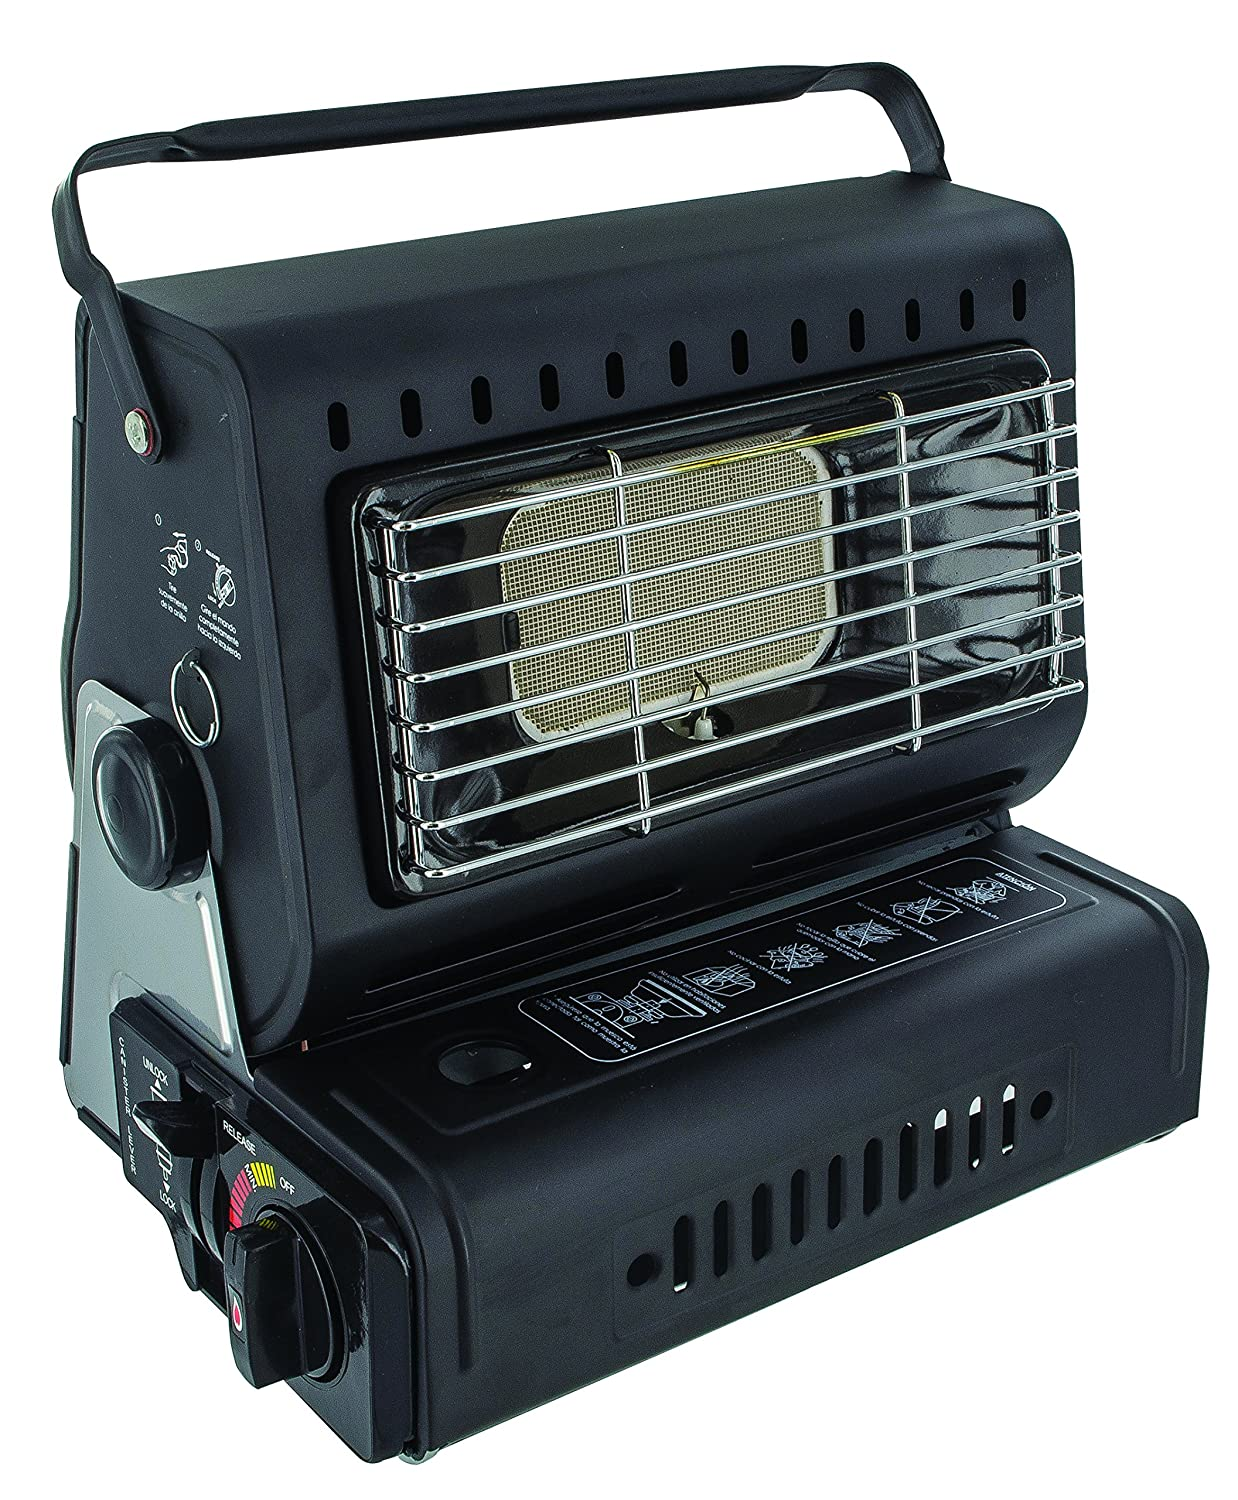 Highlander Mens Portable Compact Lightweight Camping Gas Heater GAS009